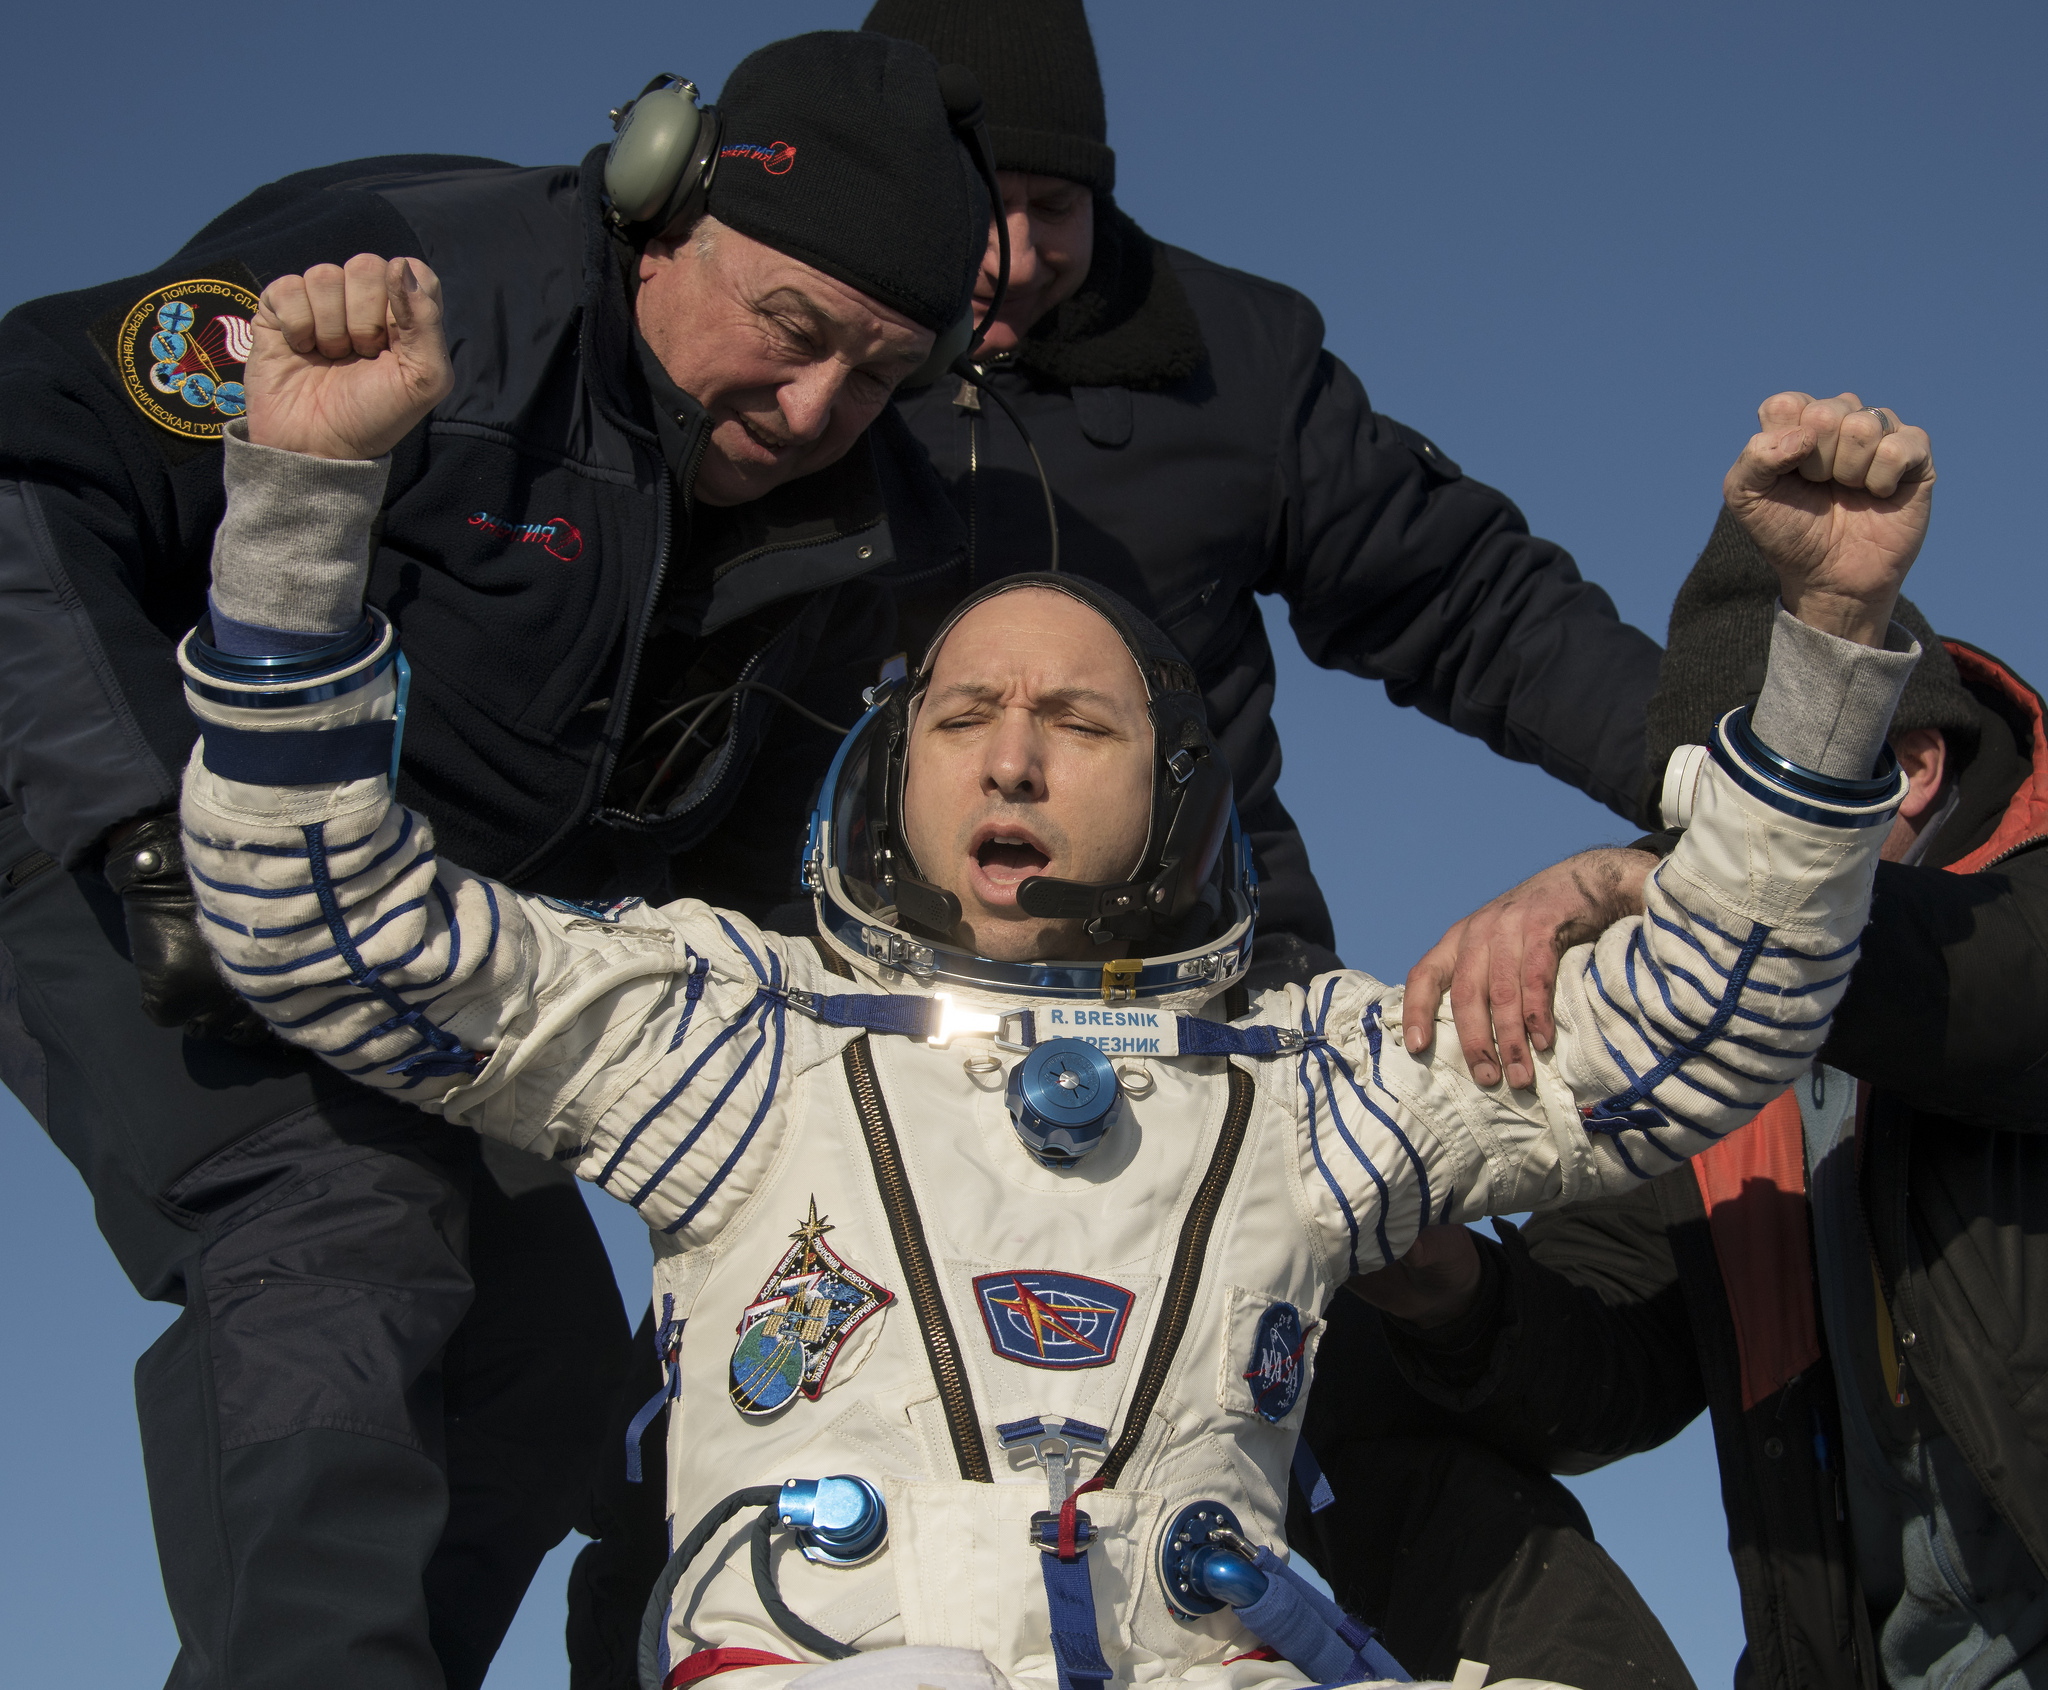 Randy Bresnik is helped out of Soyuz MS-05. Credit: NASA/Bill Ingalls